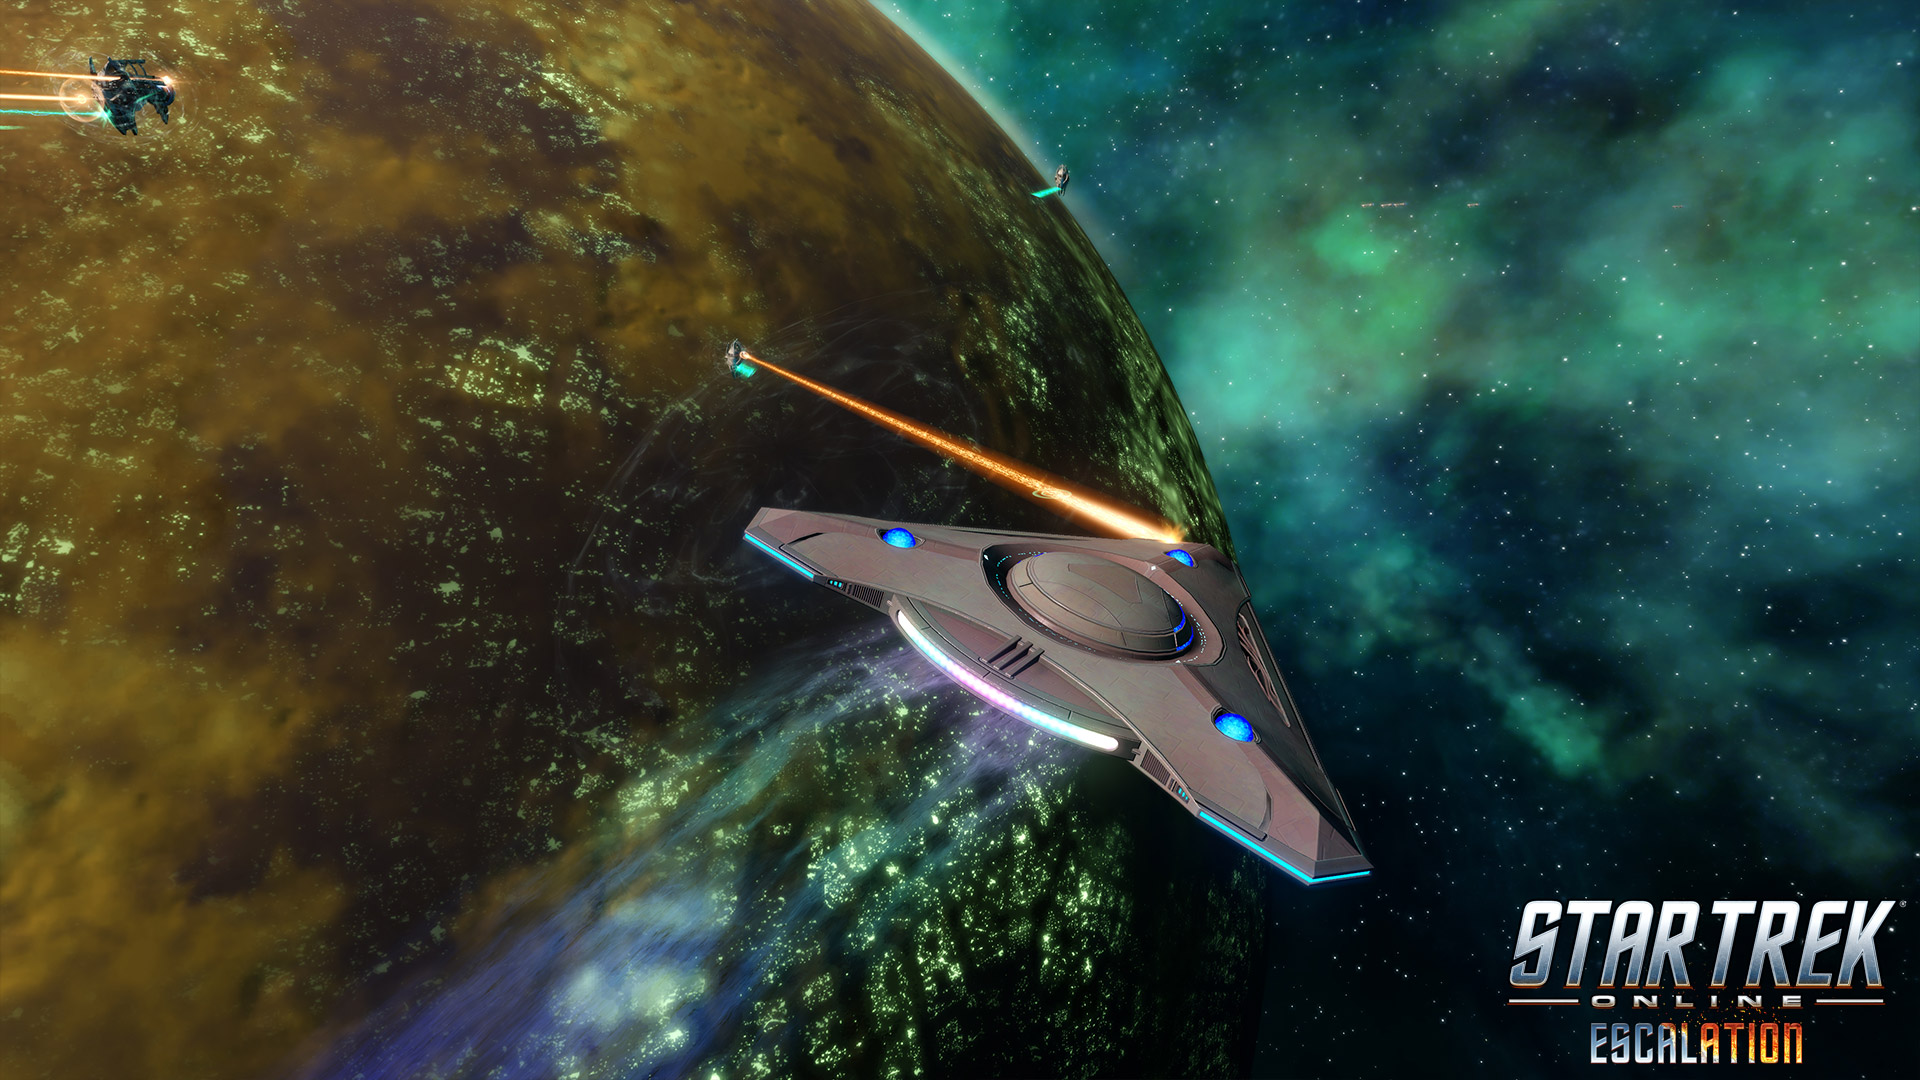 Free Star Trek Online Wallpaper in 1920x1080